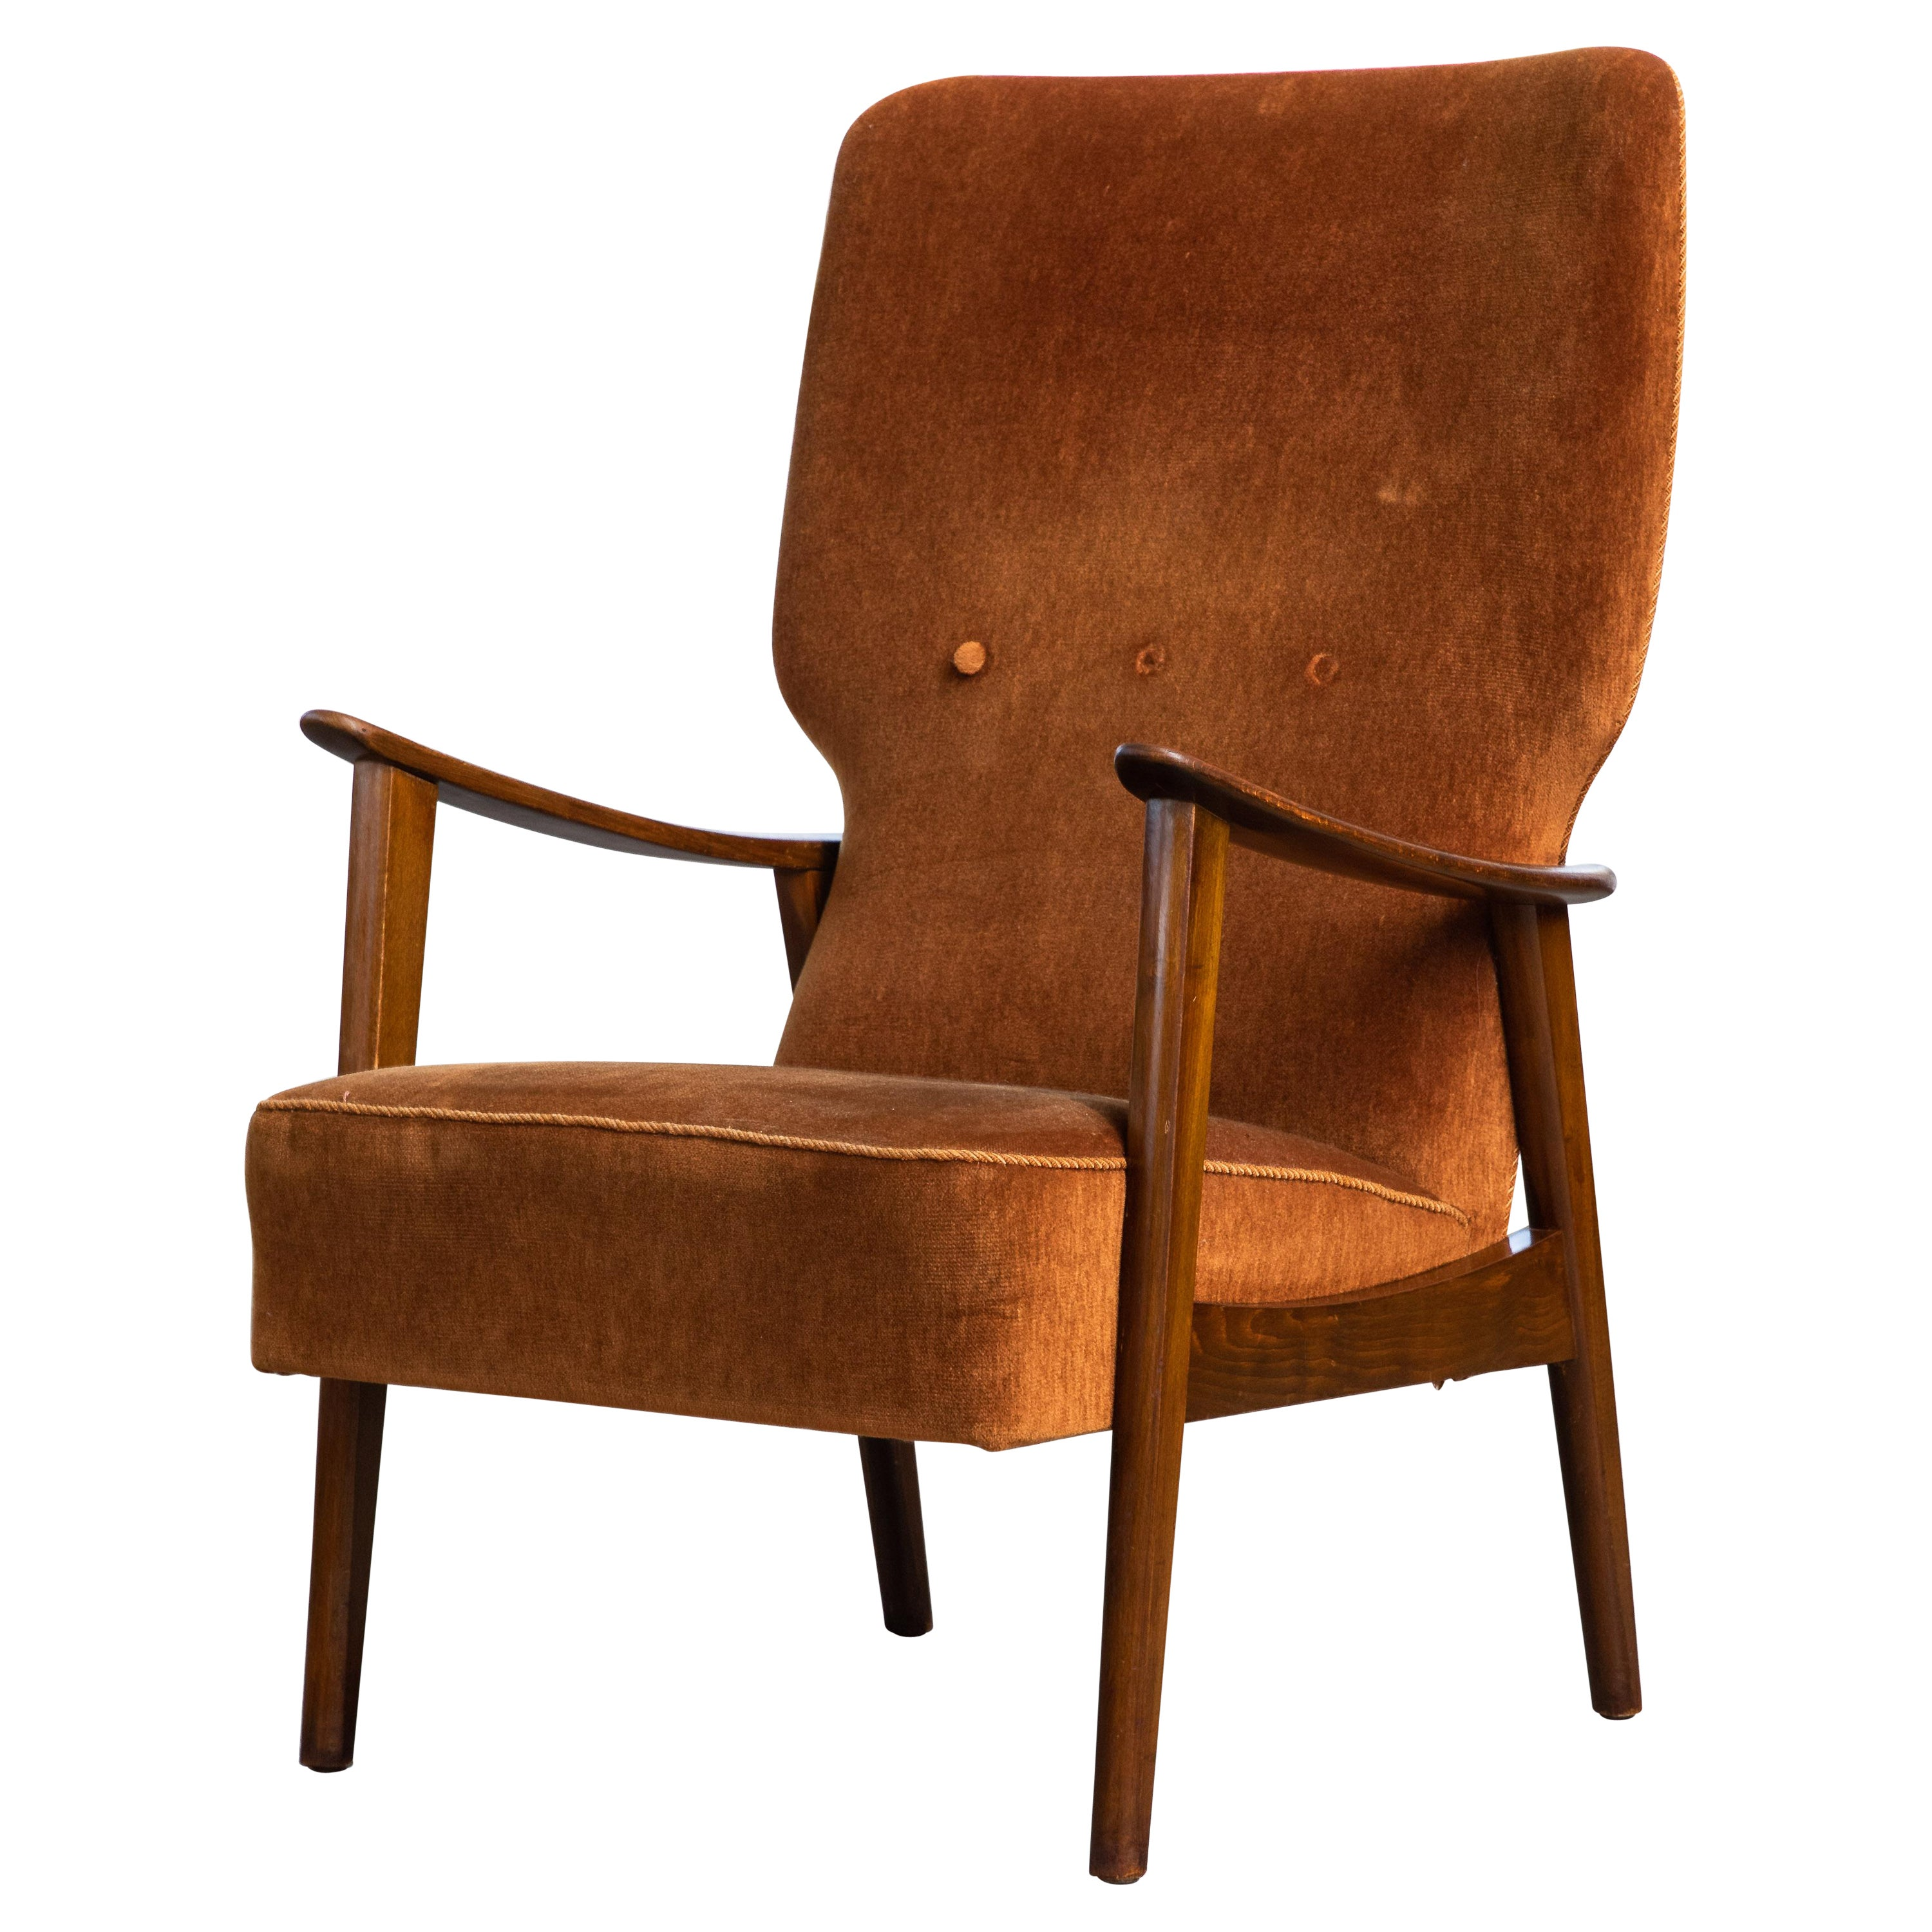 Danish Midcentury Easy Chair in Stained Oak by Fritz Hansen, ca. 1950